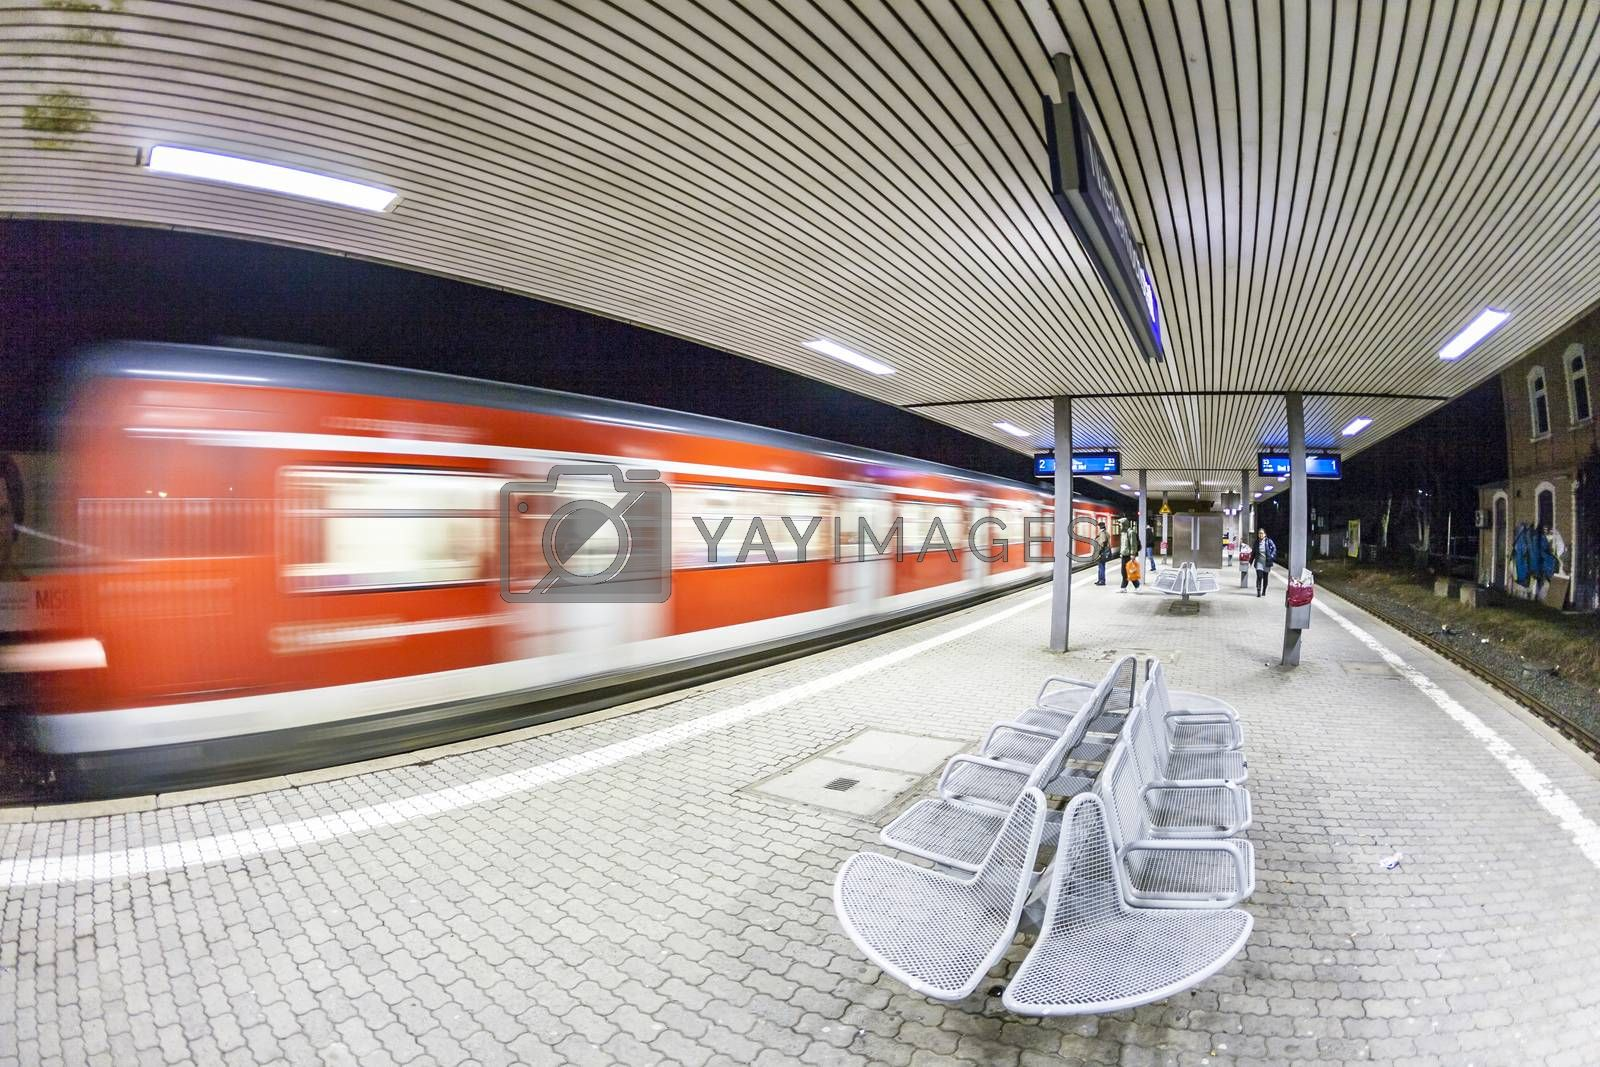 ESCHBON, GERMANY - MARCH 18, 2010: people wait for arriving train Line S3 at train station in Eschborn, Germany. Frankfurt public transport system is operated by the company RMV. S3 serves the area Frankfurt to Bad Soden.